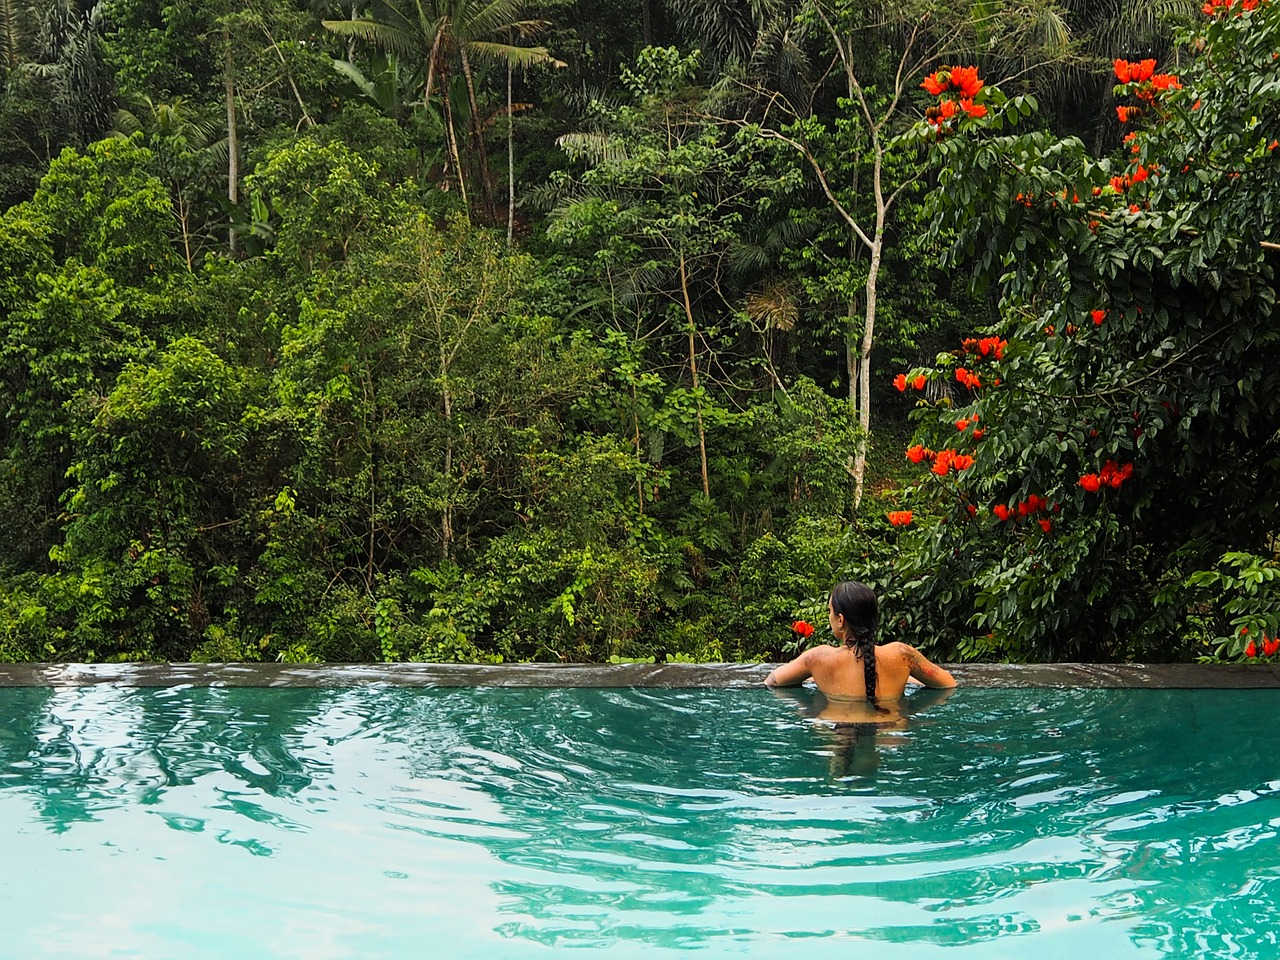 Bali Jungle Pool